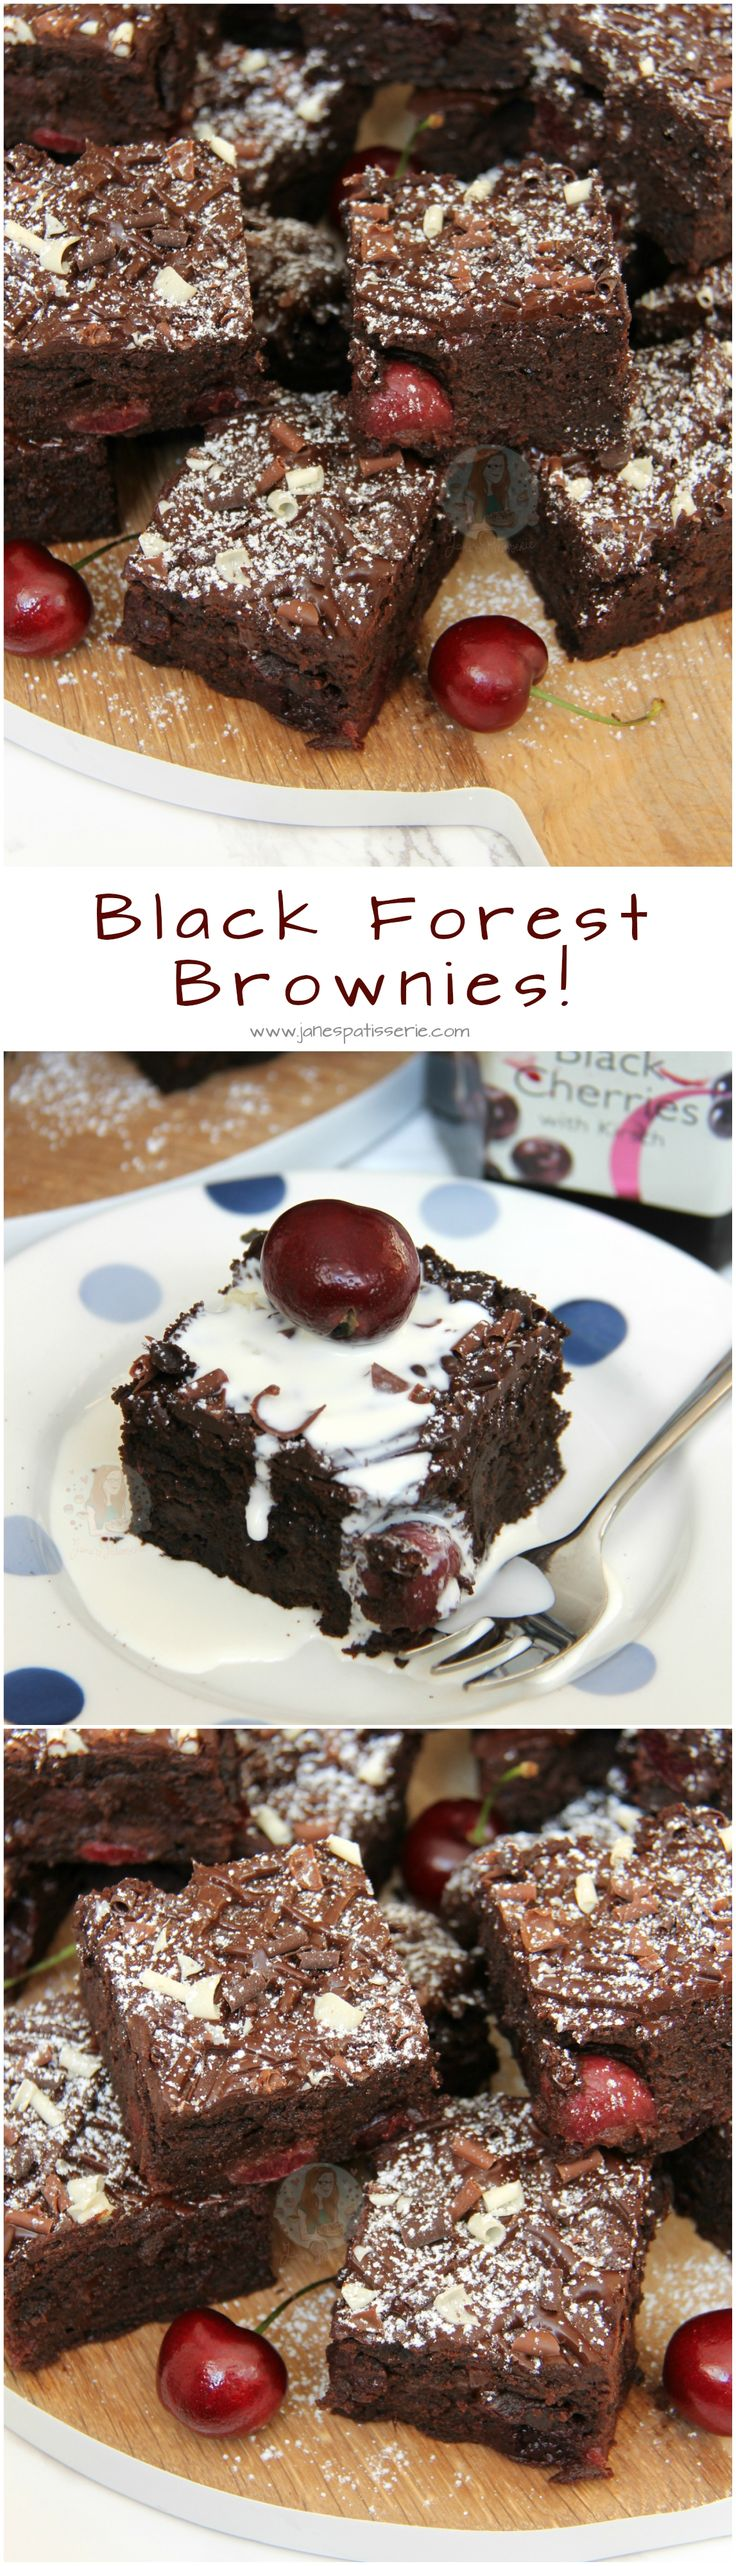 Black Forest Brownies! ❤️ Dark Chocolate Chip Brownies, Cherries in Kirsch, Fresh Cherries, and even more Chocolate on top.